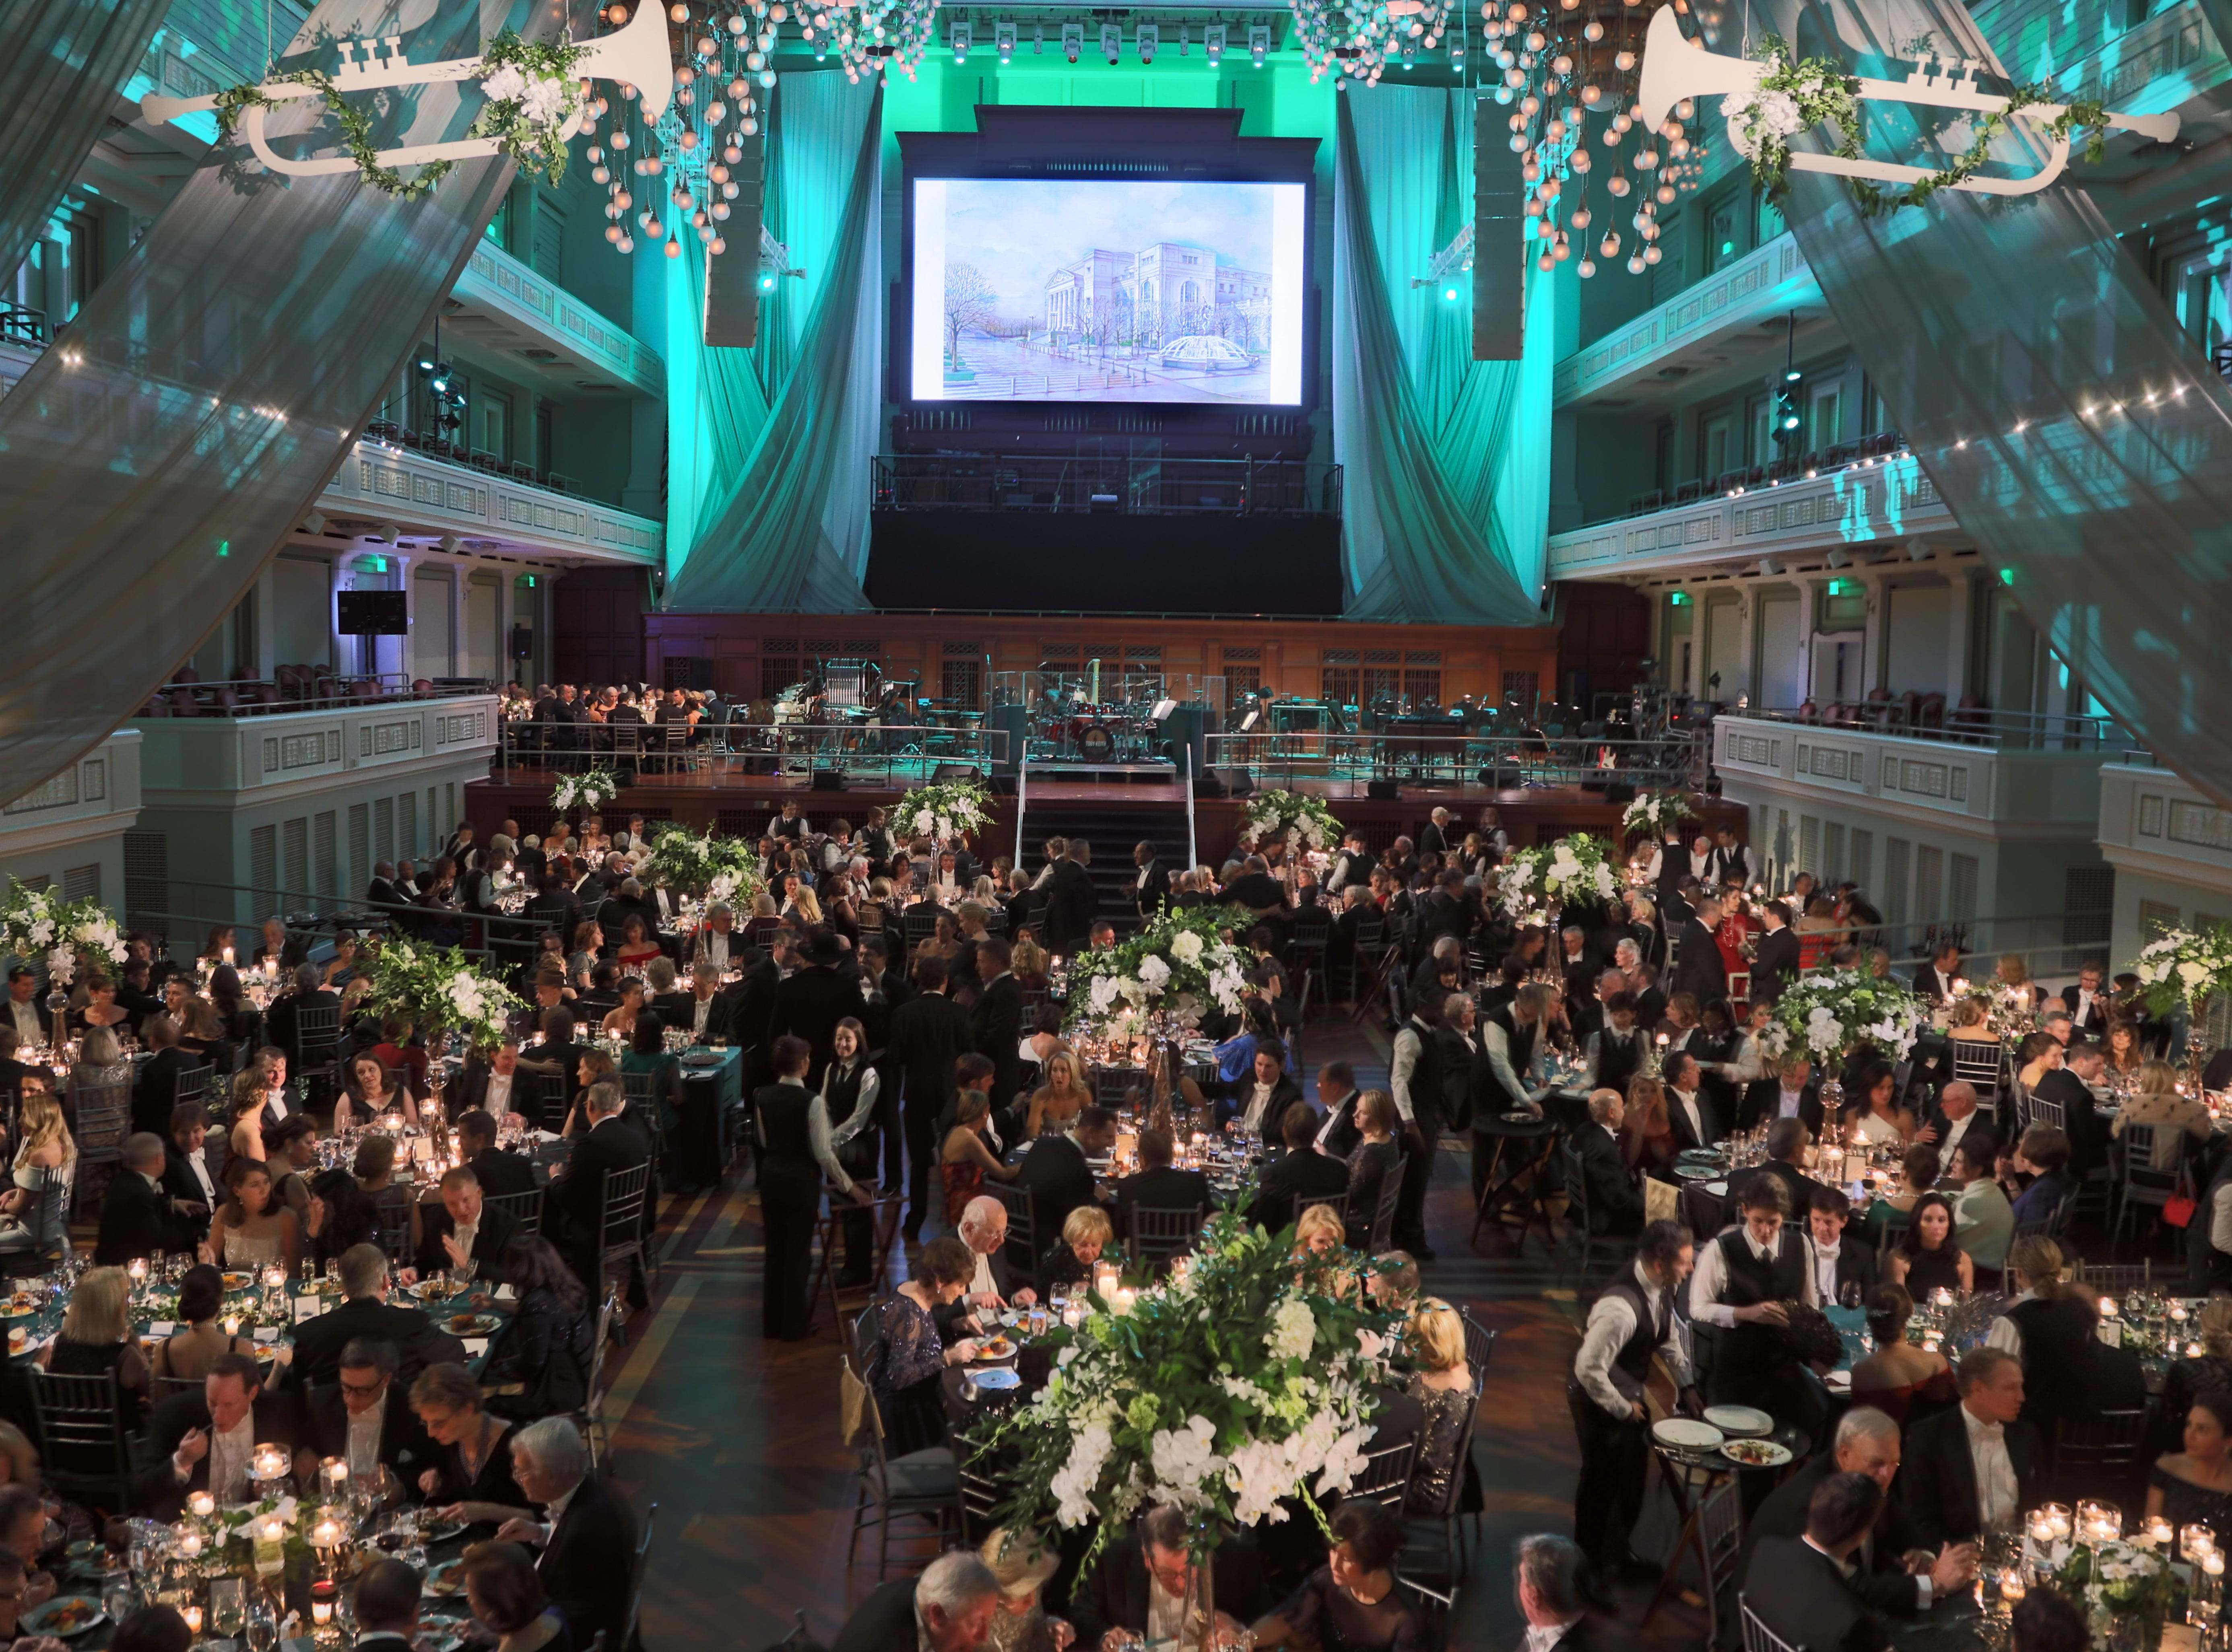 Guests are seated for dinner at the 34th annual Symphony Ball on Saturday, December 8, 2018, at Schermerhorn Symphony Center.